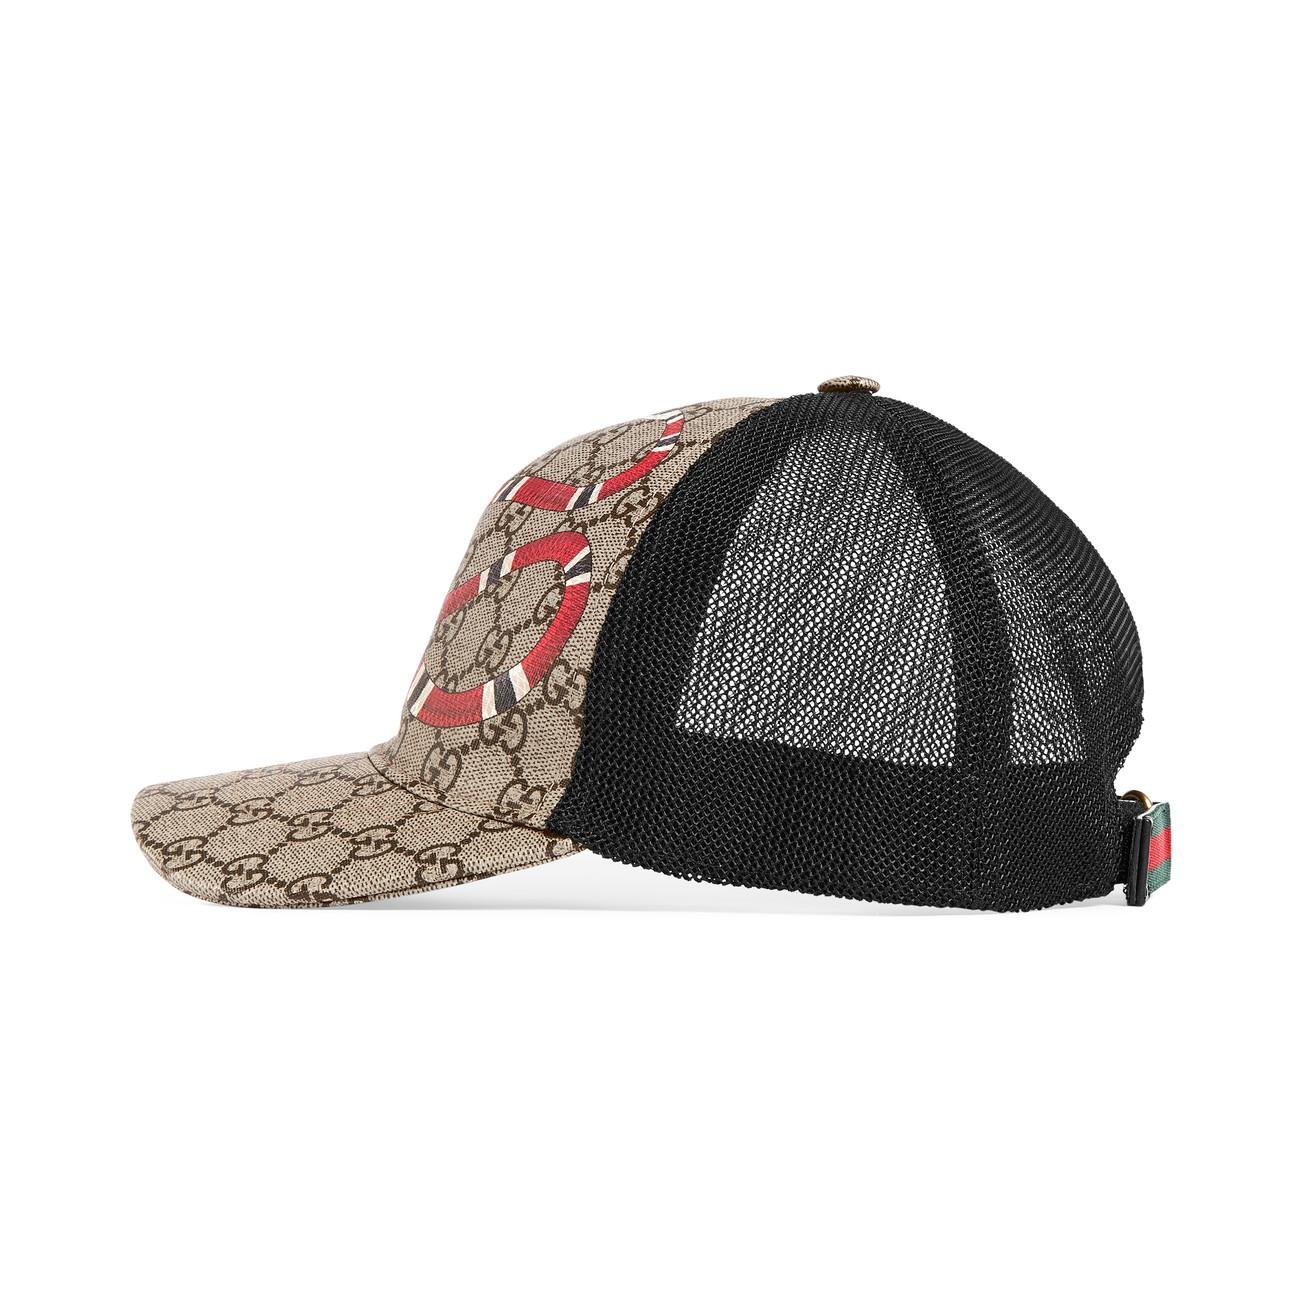 5f698c8e9d4 Gucci - Multicolor Snake Print Gg Supreme Baseball Hat for Men - Lyst. View  fullscreen